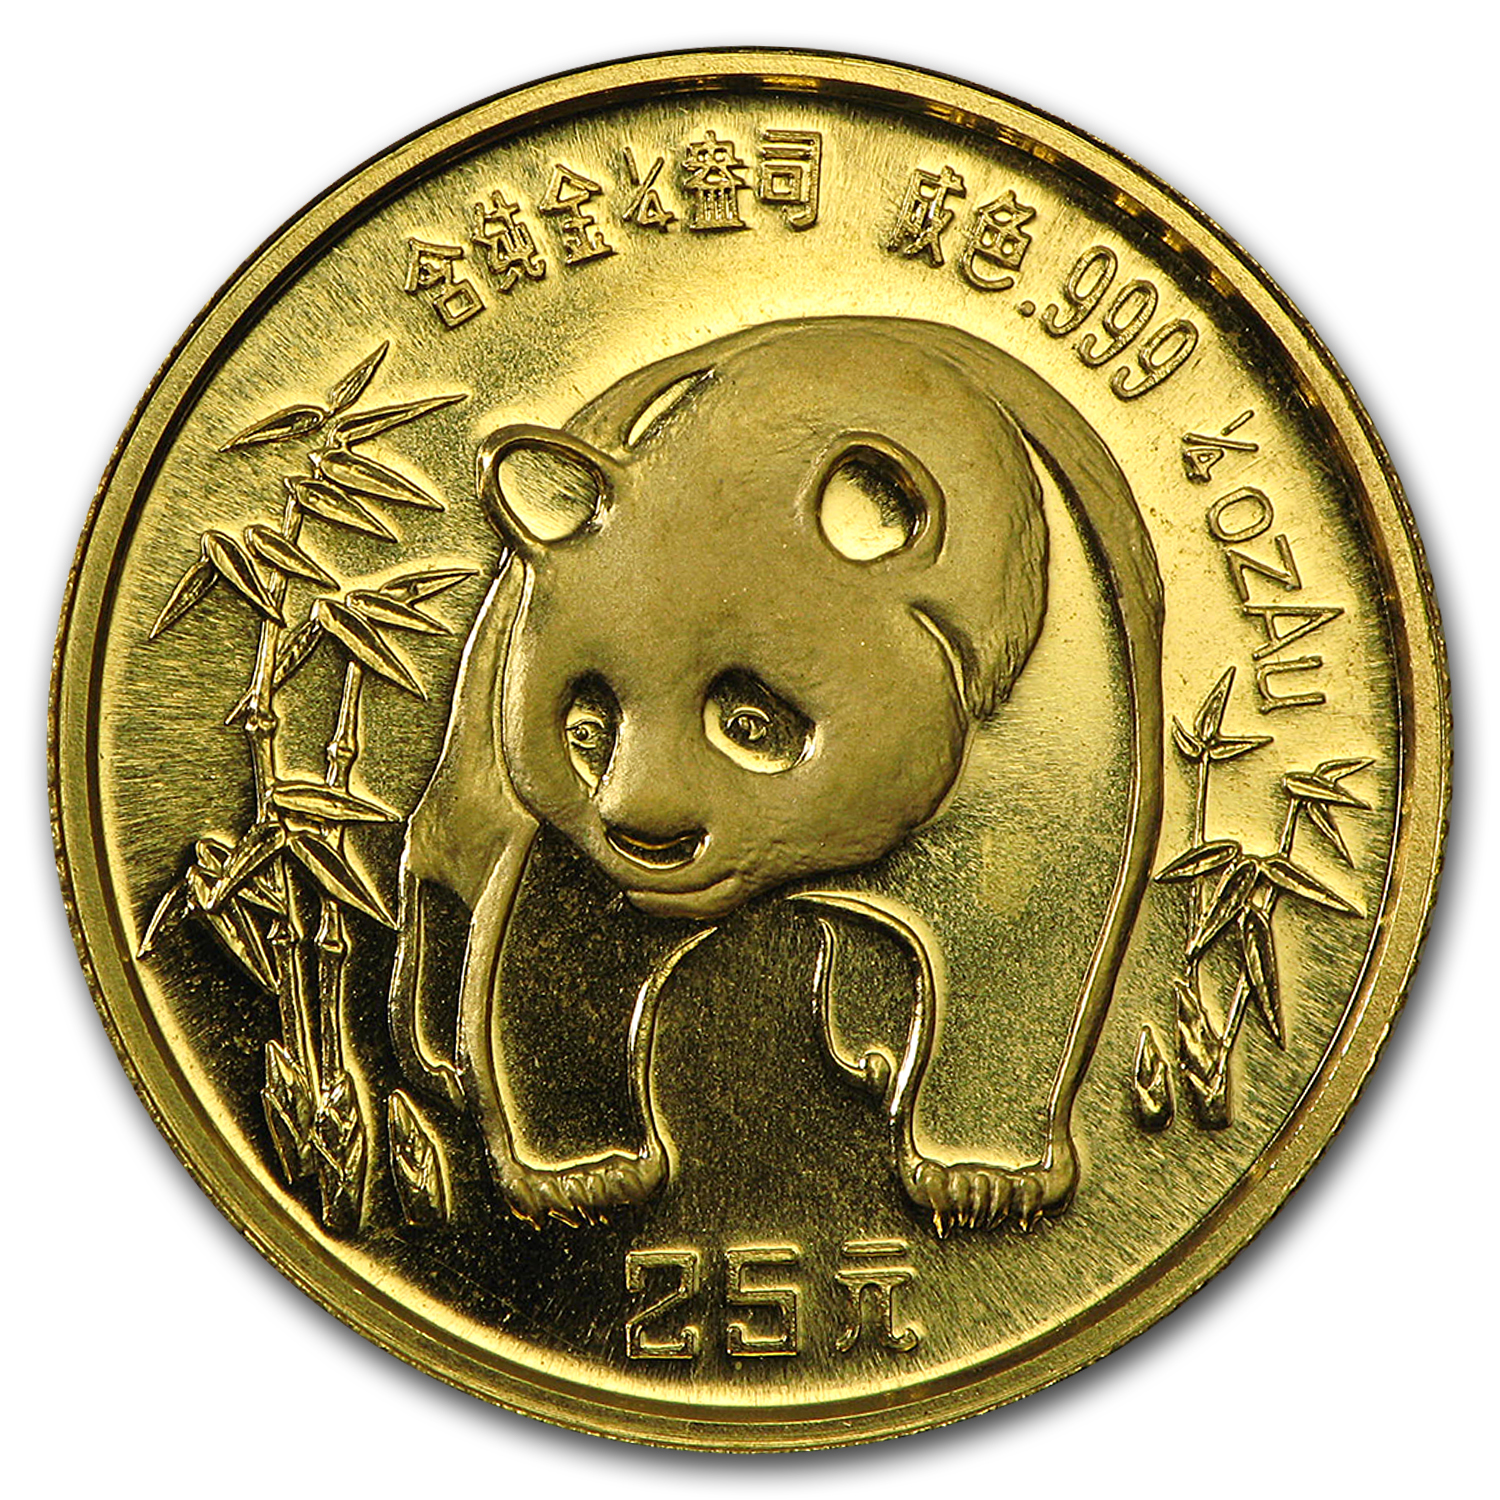 China 1/4 oz Gold Panda BU (Not Sealed in Plastic)